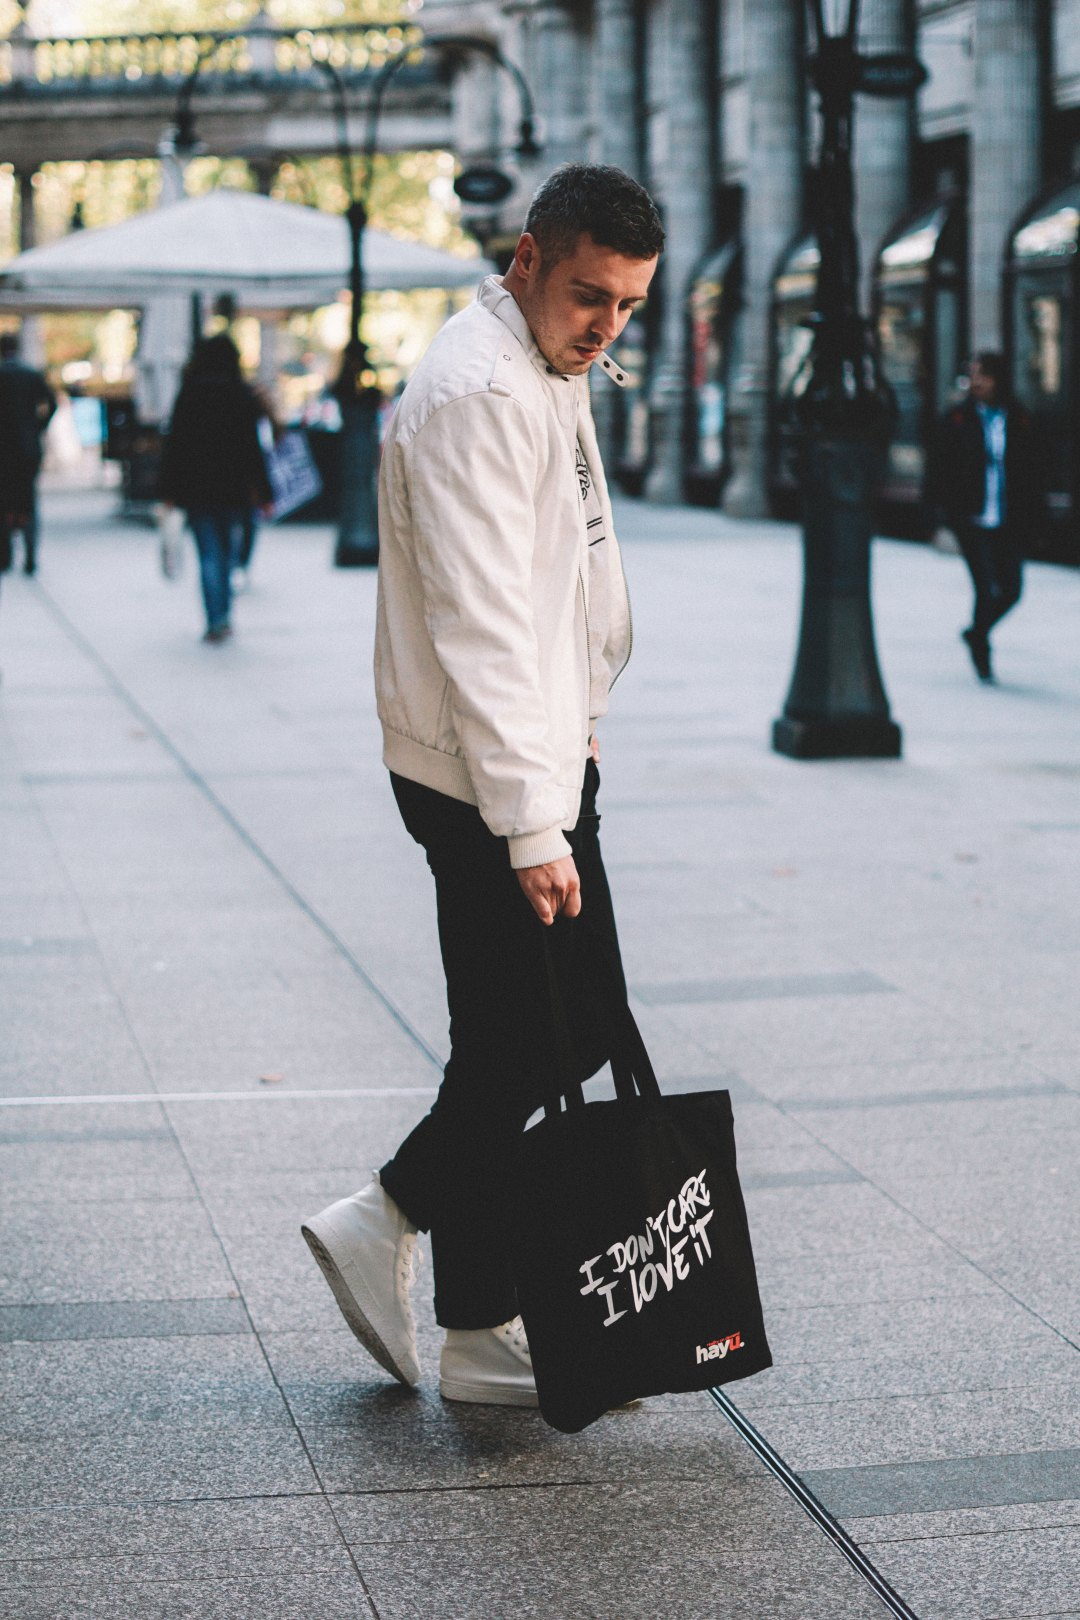 Wearing Members Only Men's Classic Iconic Racer Jacket in White, French Connection Sneaker Sweatshirt in Grey Melange/Black and ASOS High Top Trainers in White-on Crepe Look Sole. Blog by Skirmantas Petraitis.